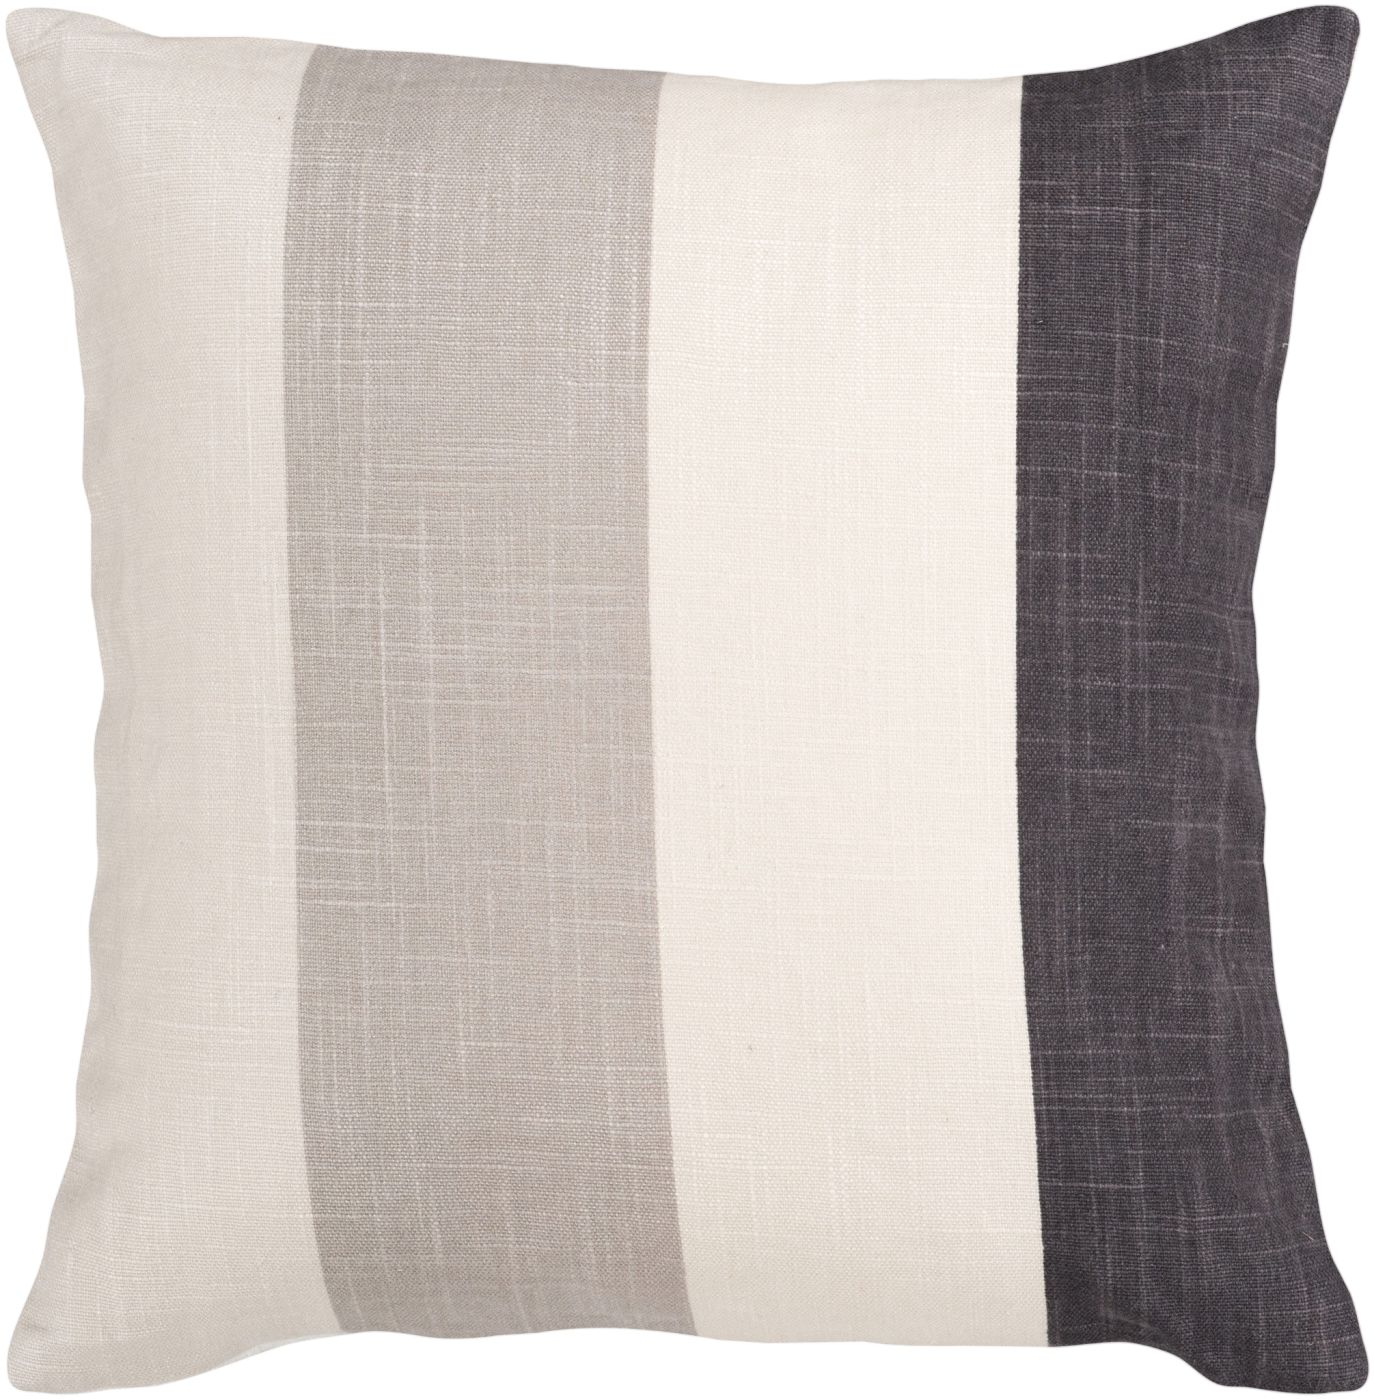 Throw Pillow Warehouse : Surya Simple Stripe Throw Pillow Neutral, Black JS011-1818D. Only $45.60 at Contemporary ...